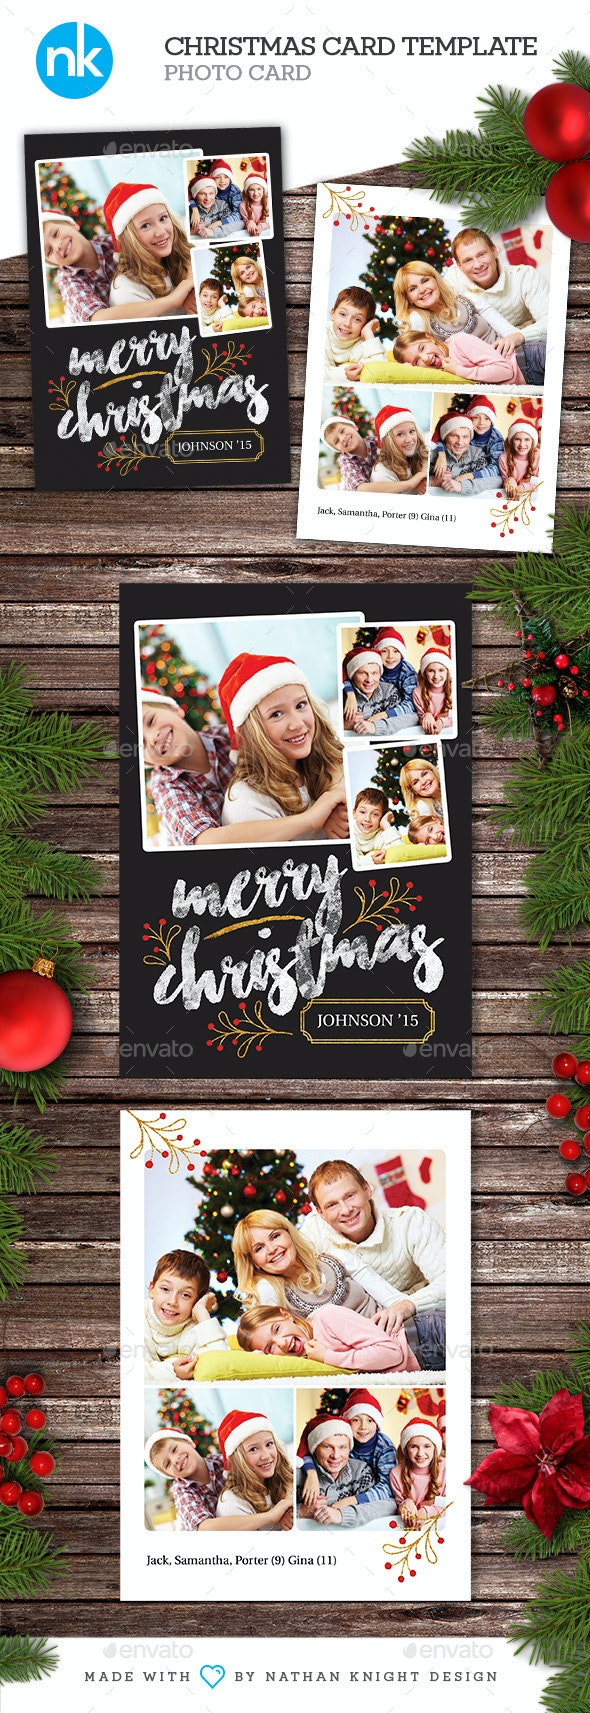 Christmas Card Template - Modern Gold Foil - Holiday Greeting Cards